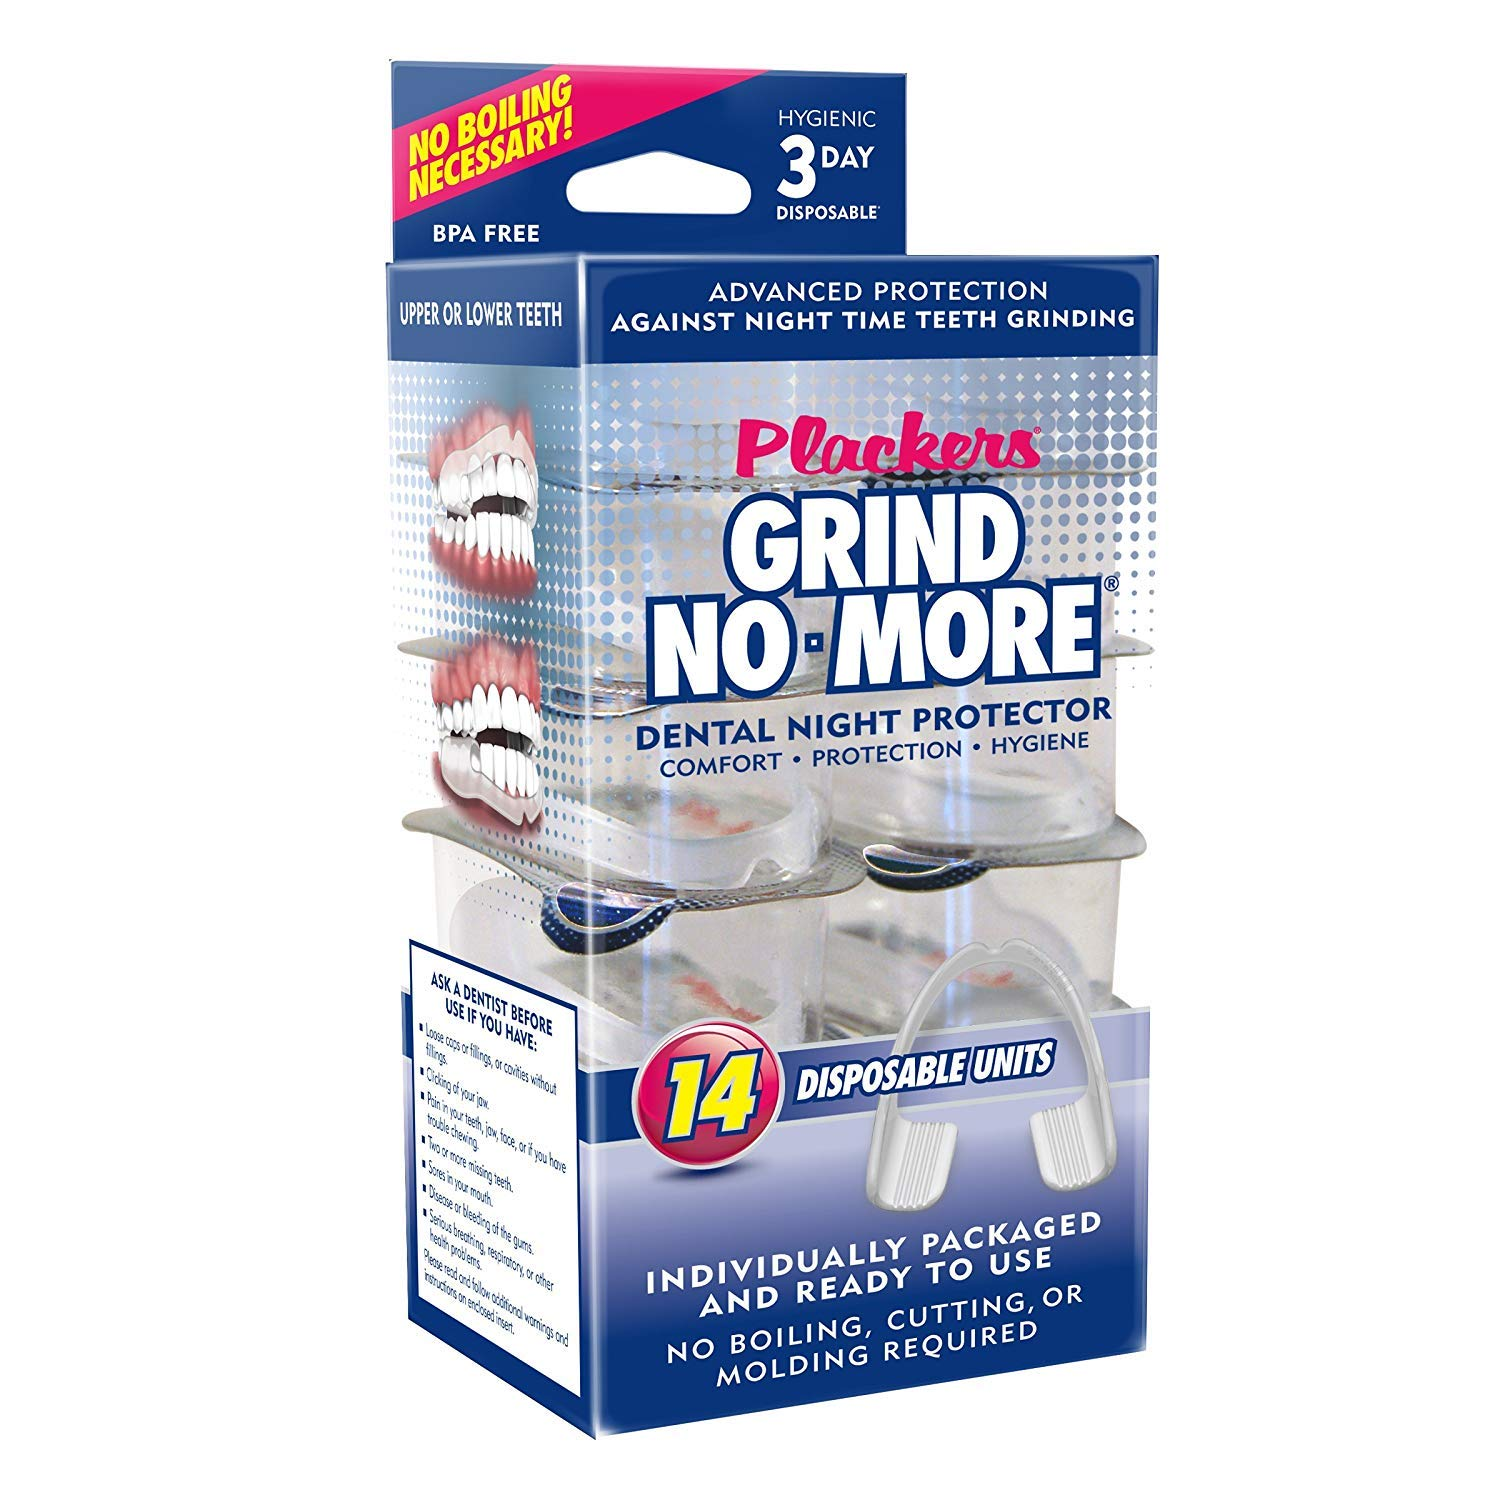 Plackers Grind No More Dental Night Protector, 14 Count 303304518